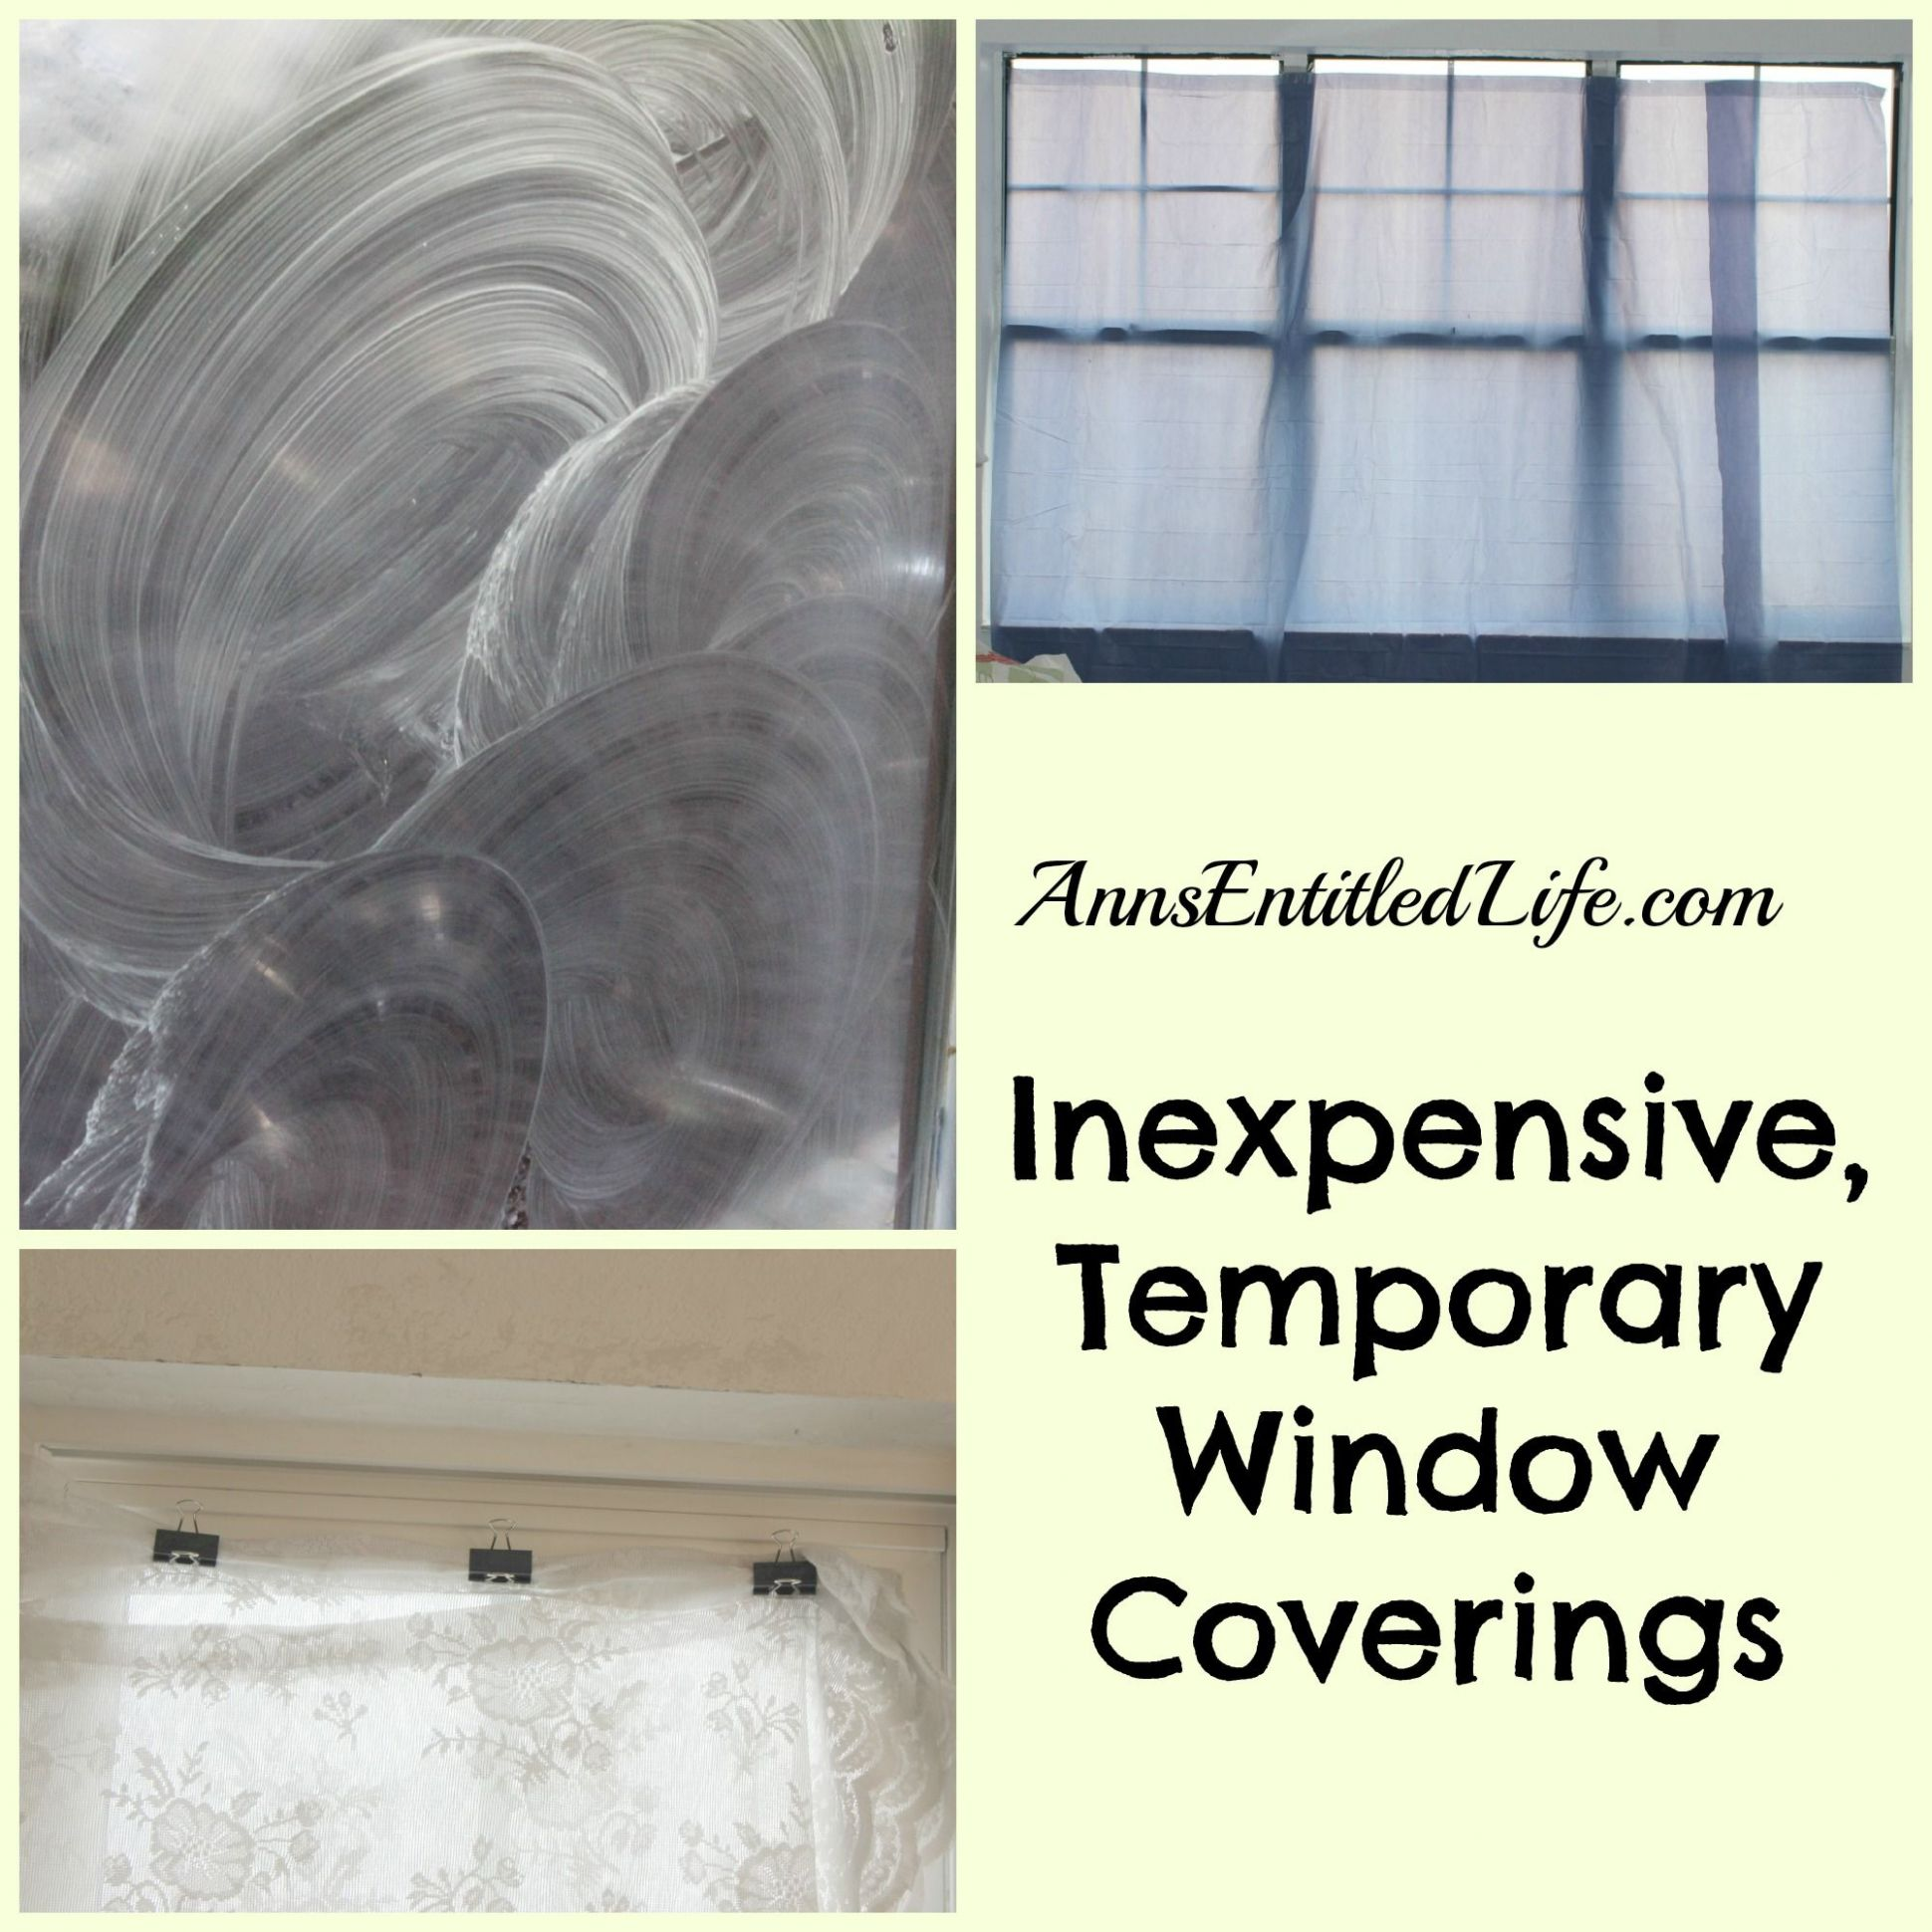 Inexpensive, Temporary Window Coverings - temporary privacy ...